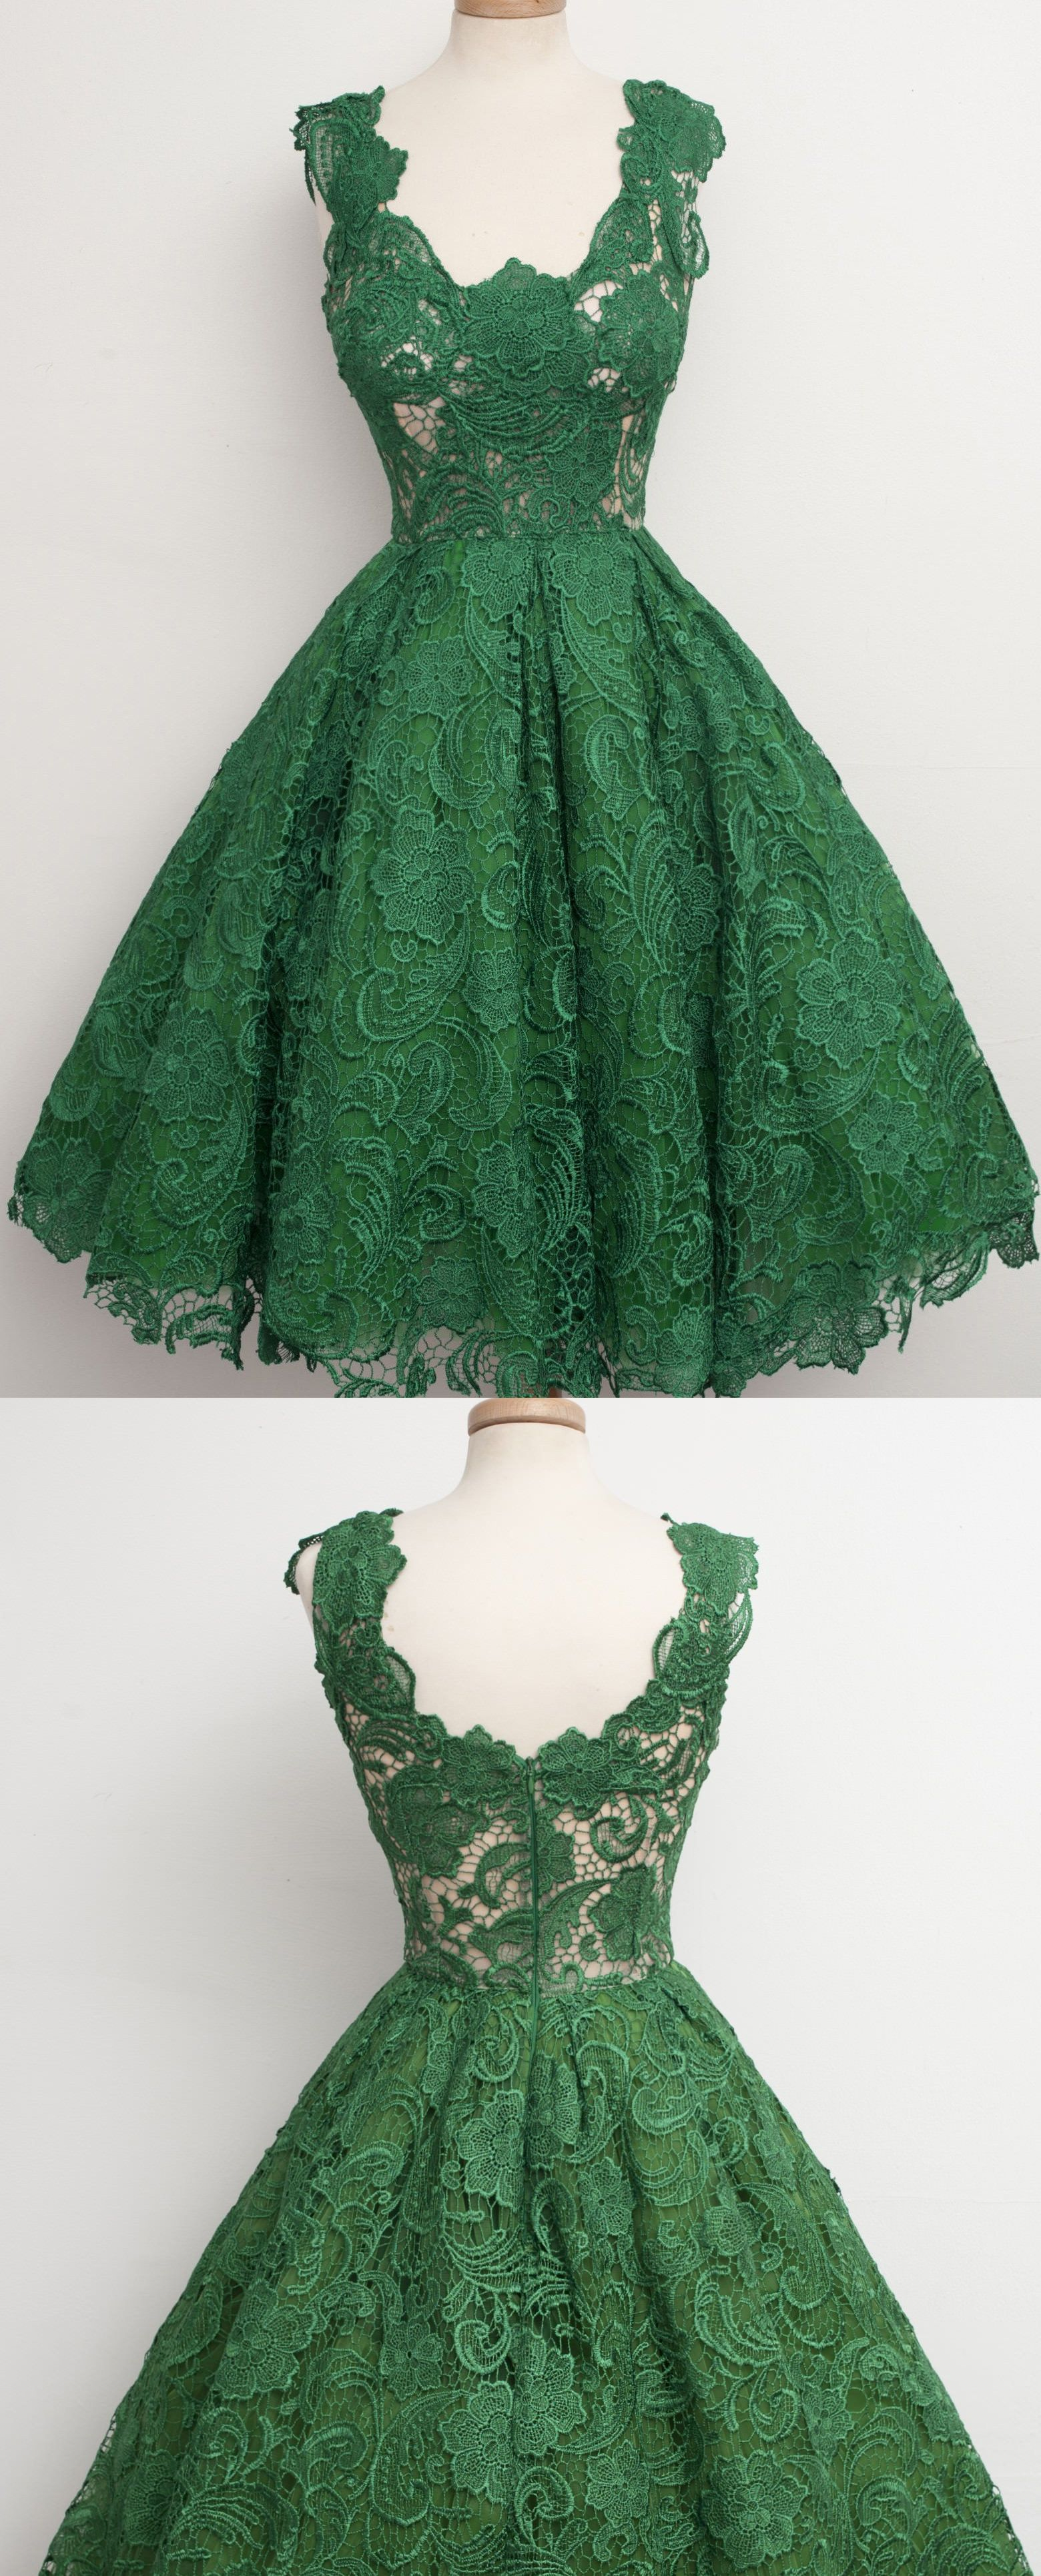 Sleeveless green party prom dresses enticing short alineprincess